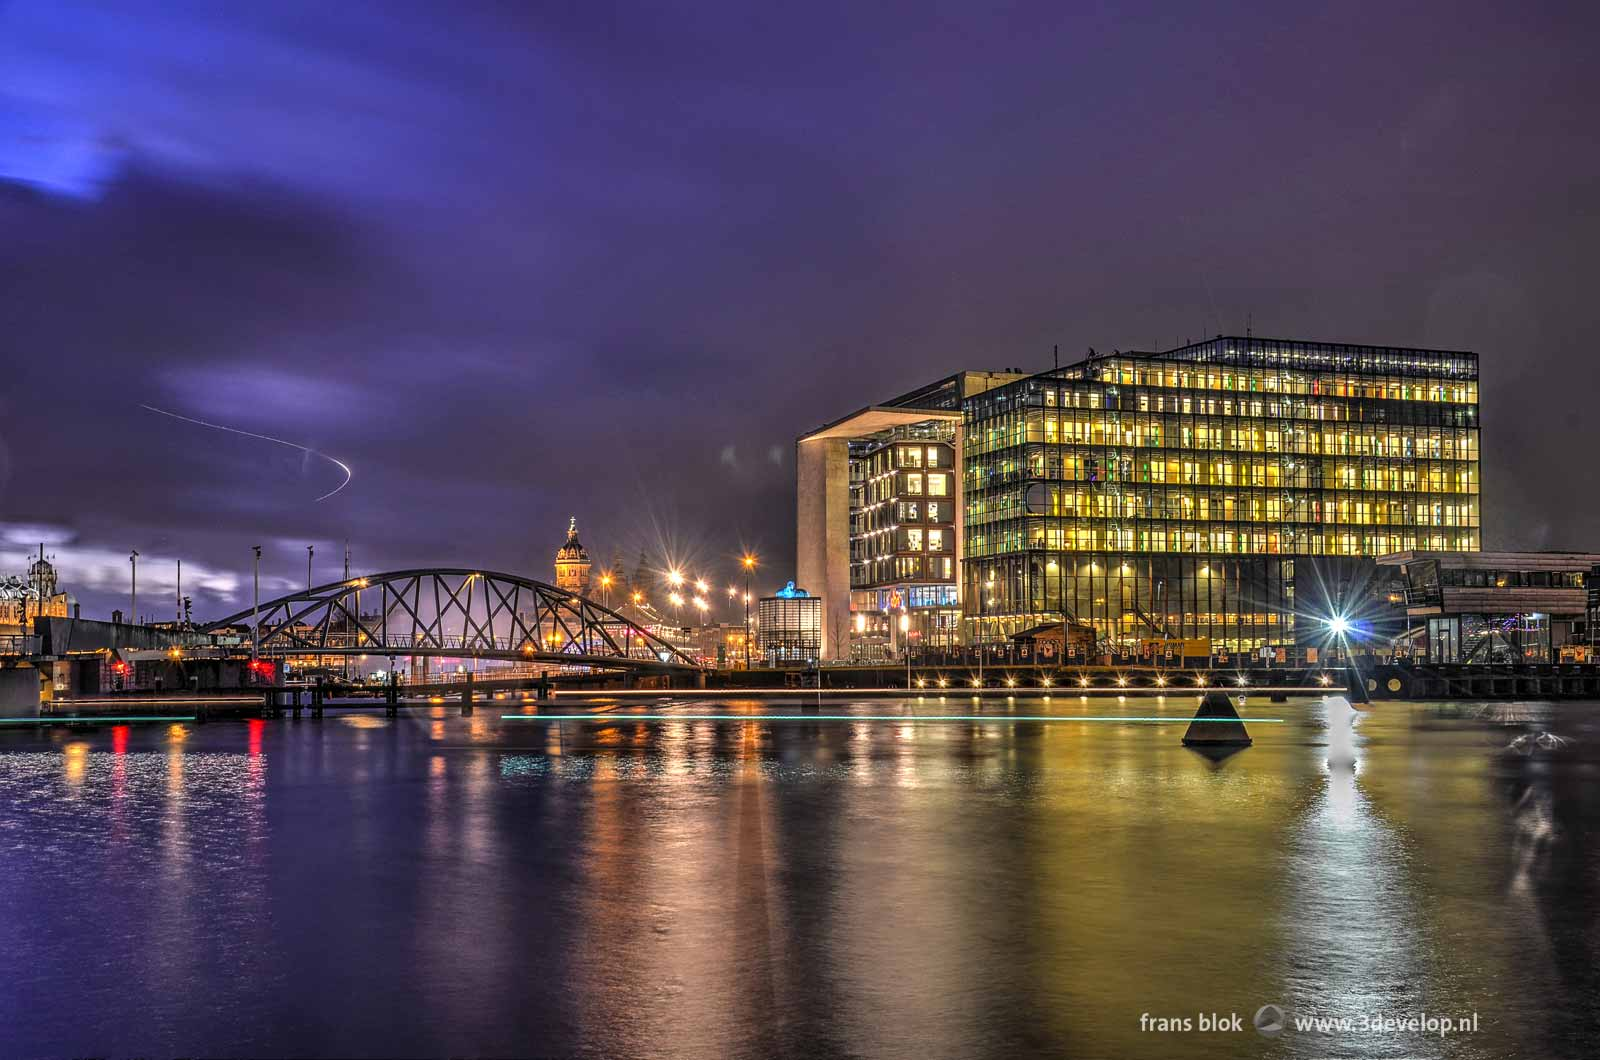 Photo taken during the blue hour after sunset at the Eastern Dock in Amsterdam, featuring the conservatory, the Library and Saint Nicholas Church